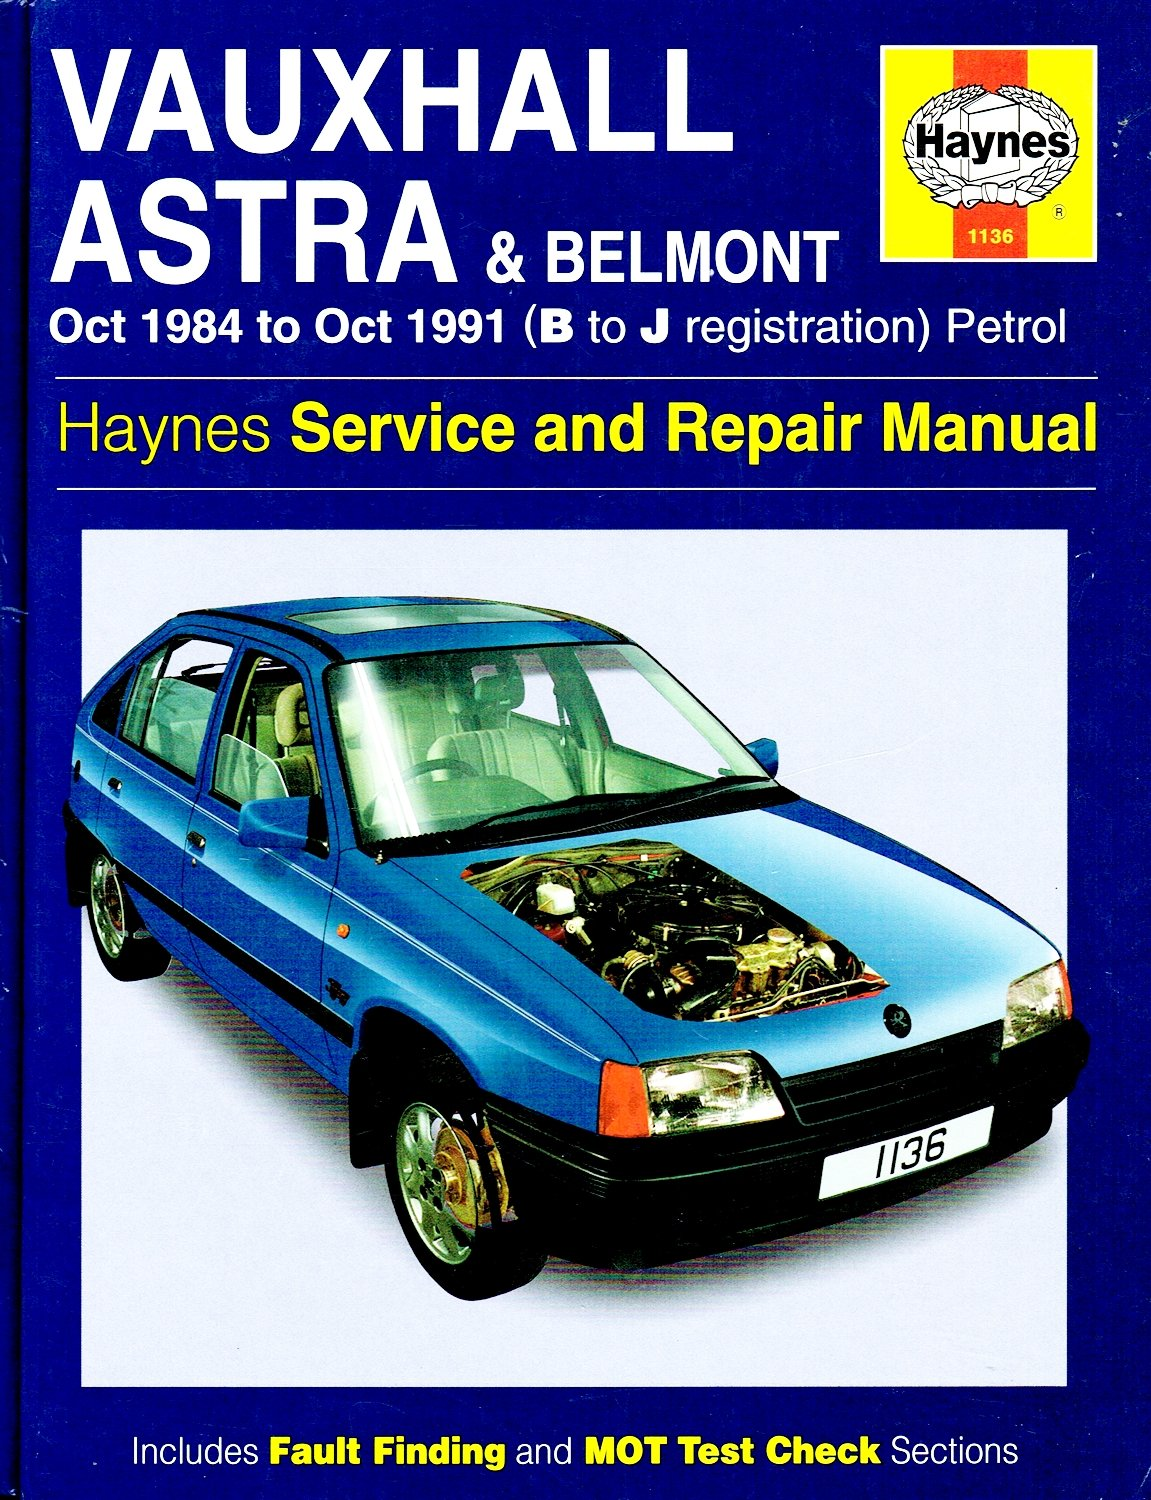 Vauxhall Astra Belmont Service Repair Manual: Amazon.co.uk: matthew minter  and mark coombs: 9781859600788: Books